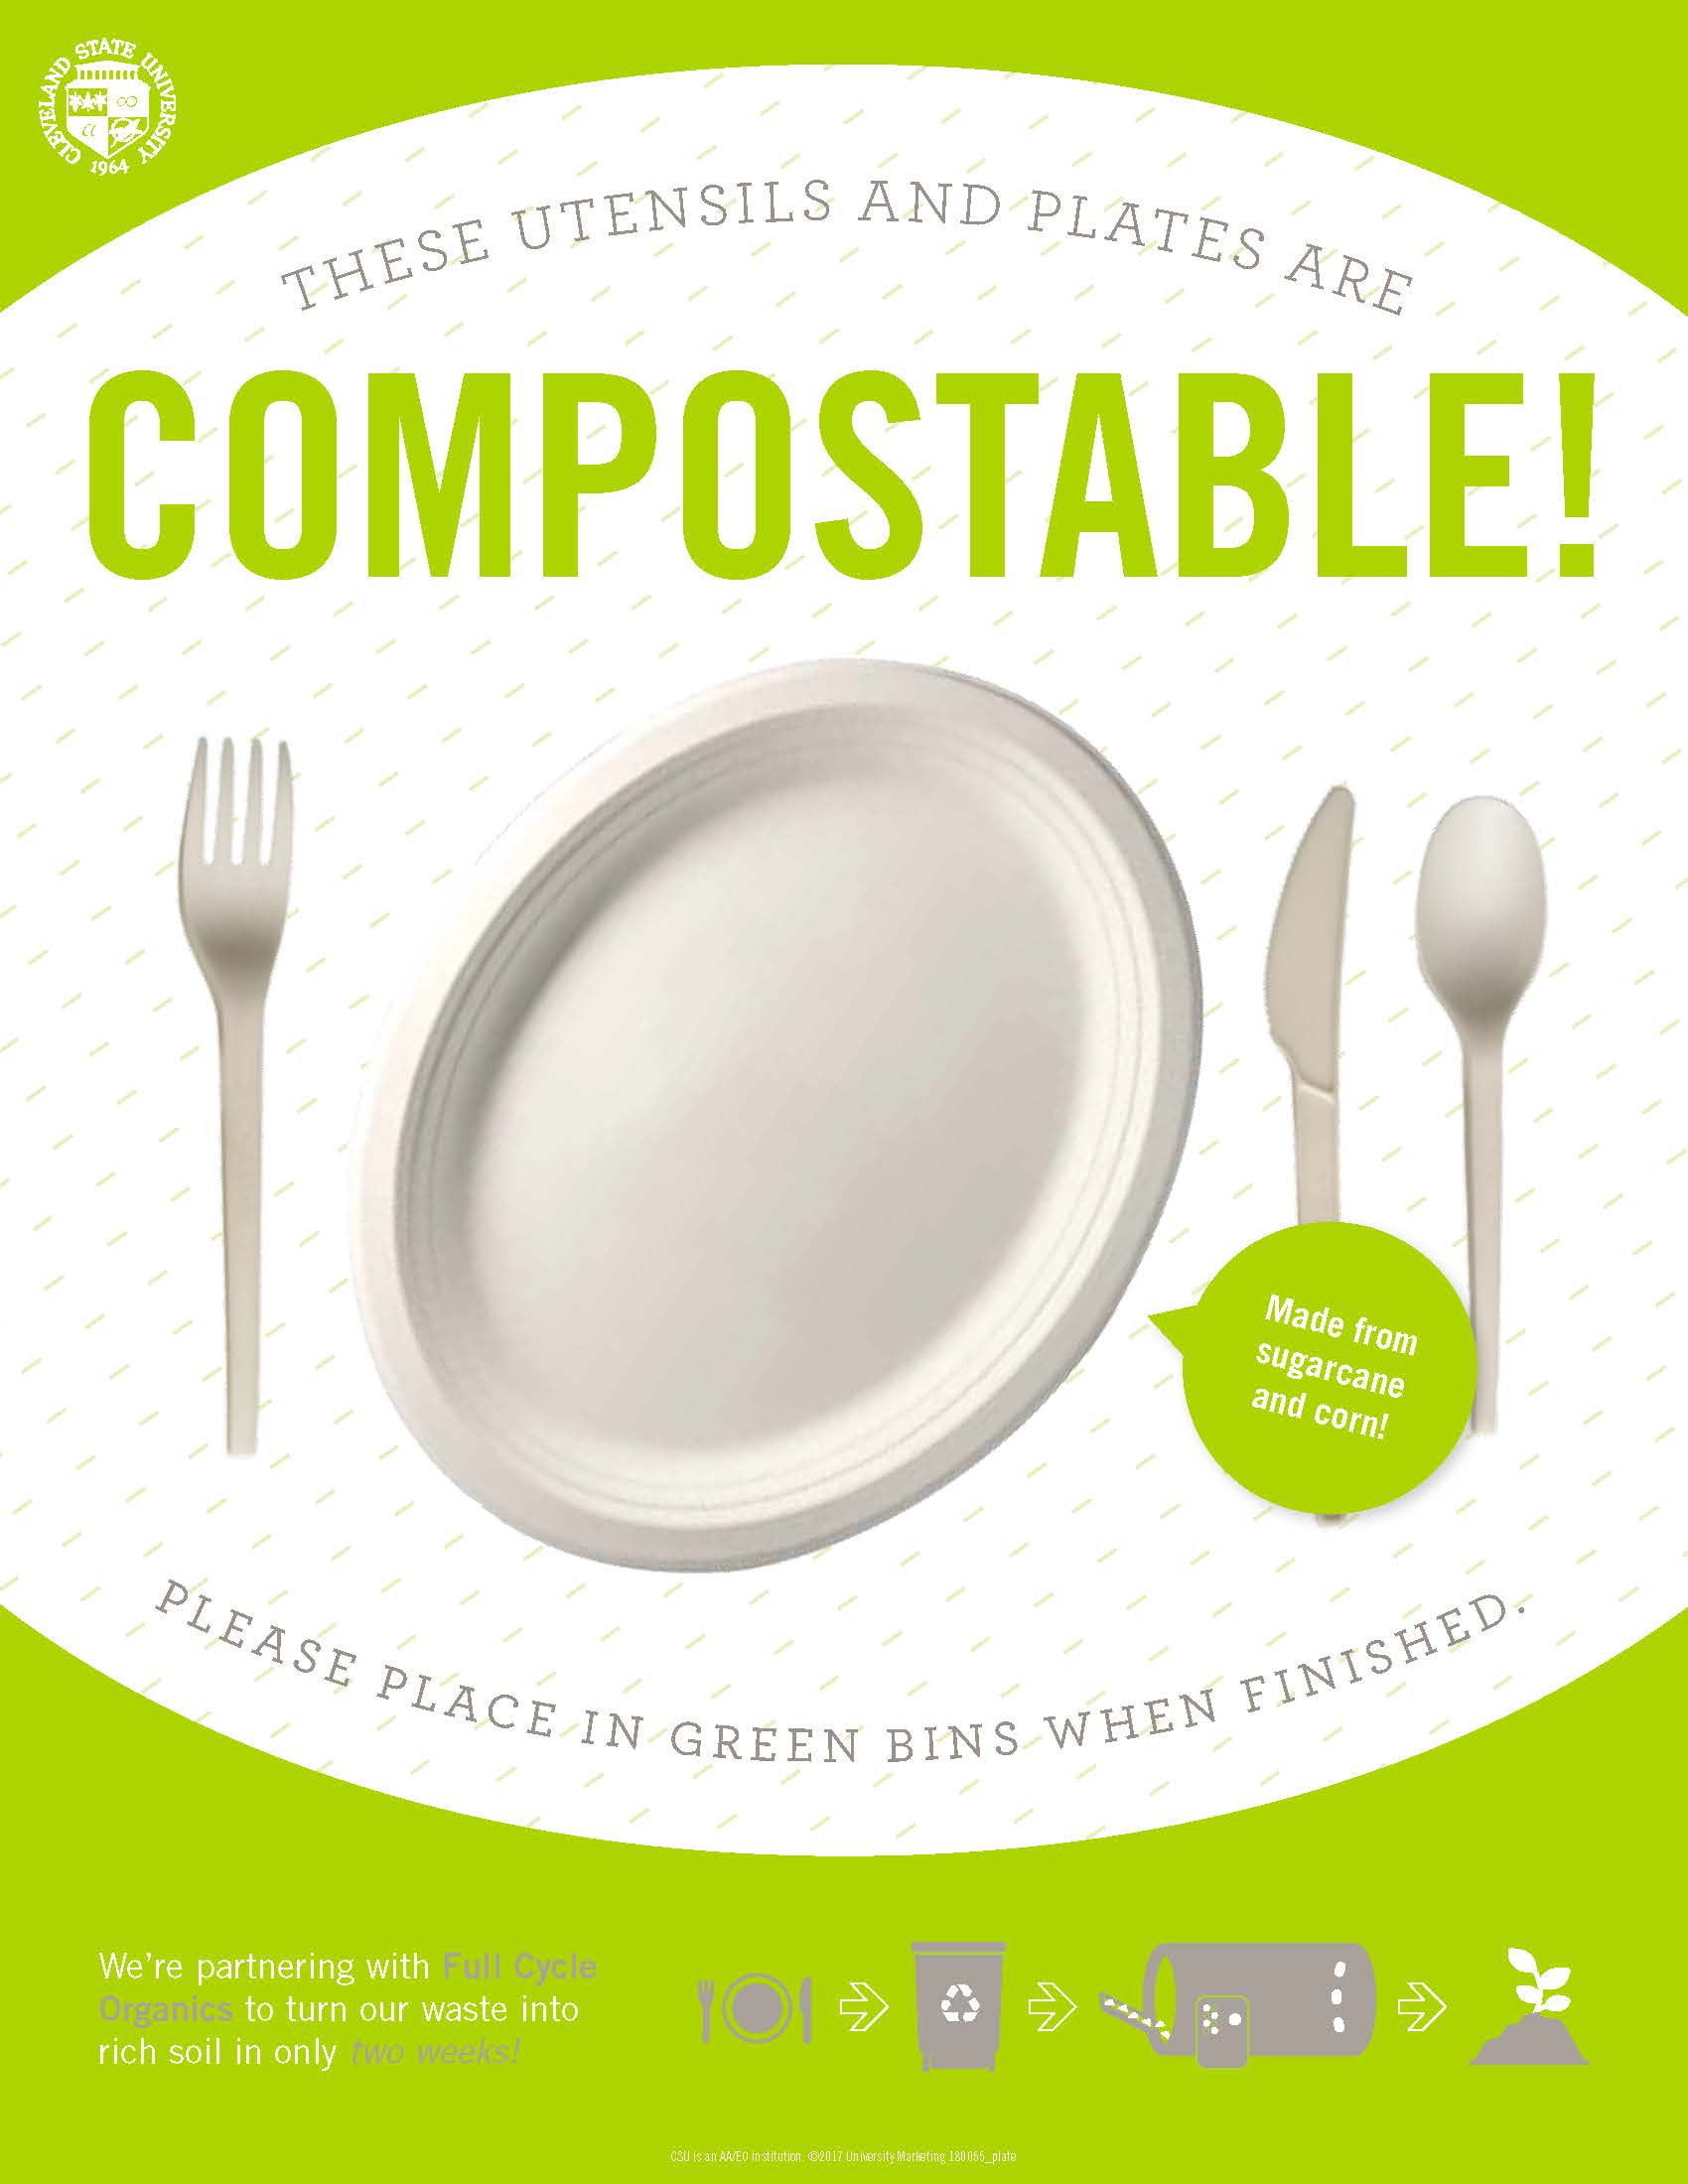 Compostable Plate & Utensils